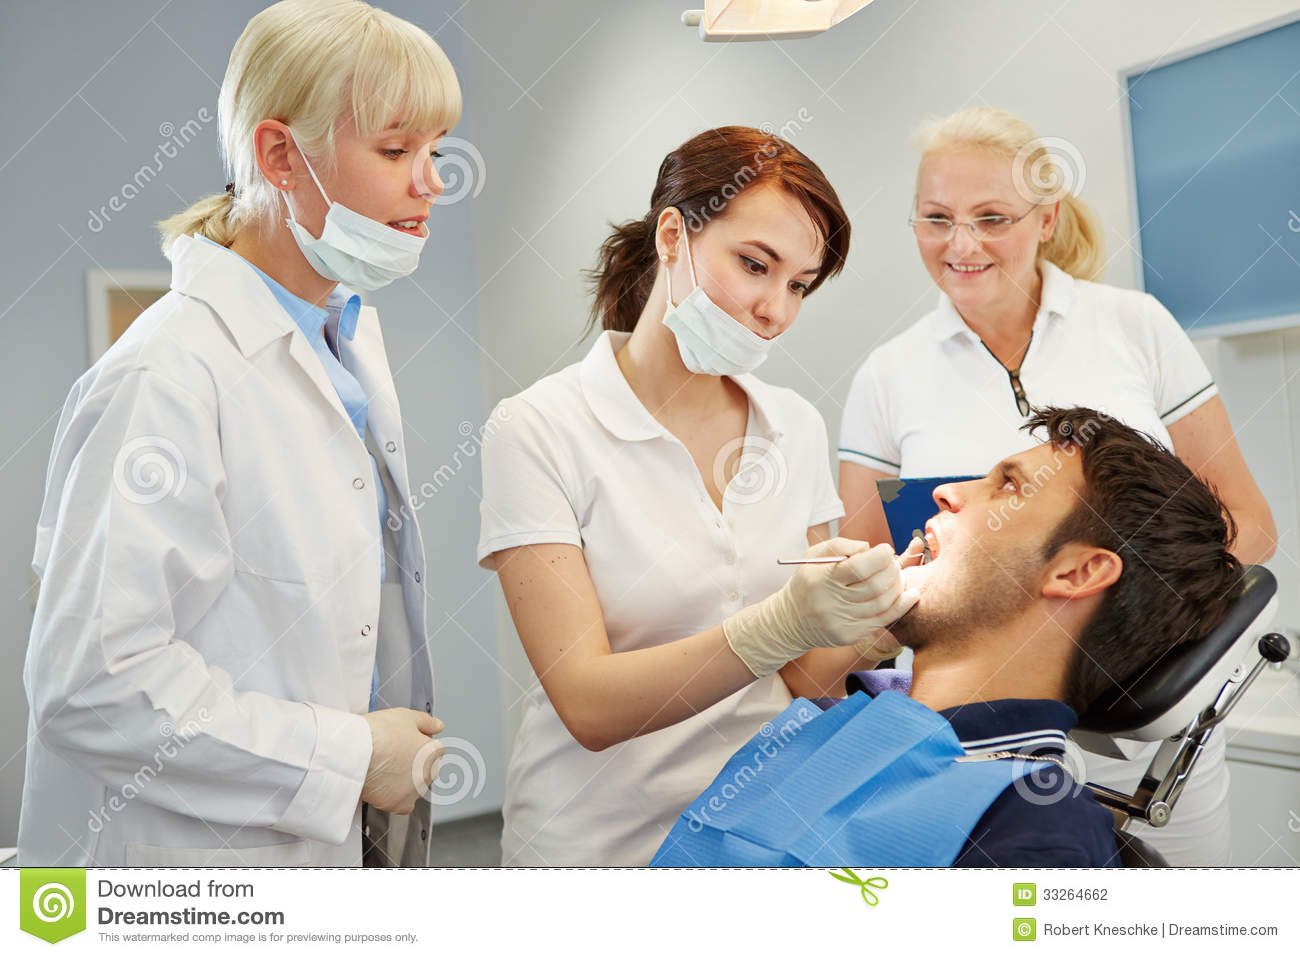 http://thumbs.dreamstime.com/z/dental-assistant-taking-approbation-test-two-dentists-33264662.jpg